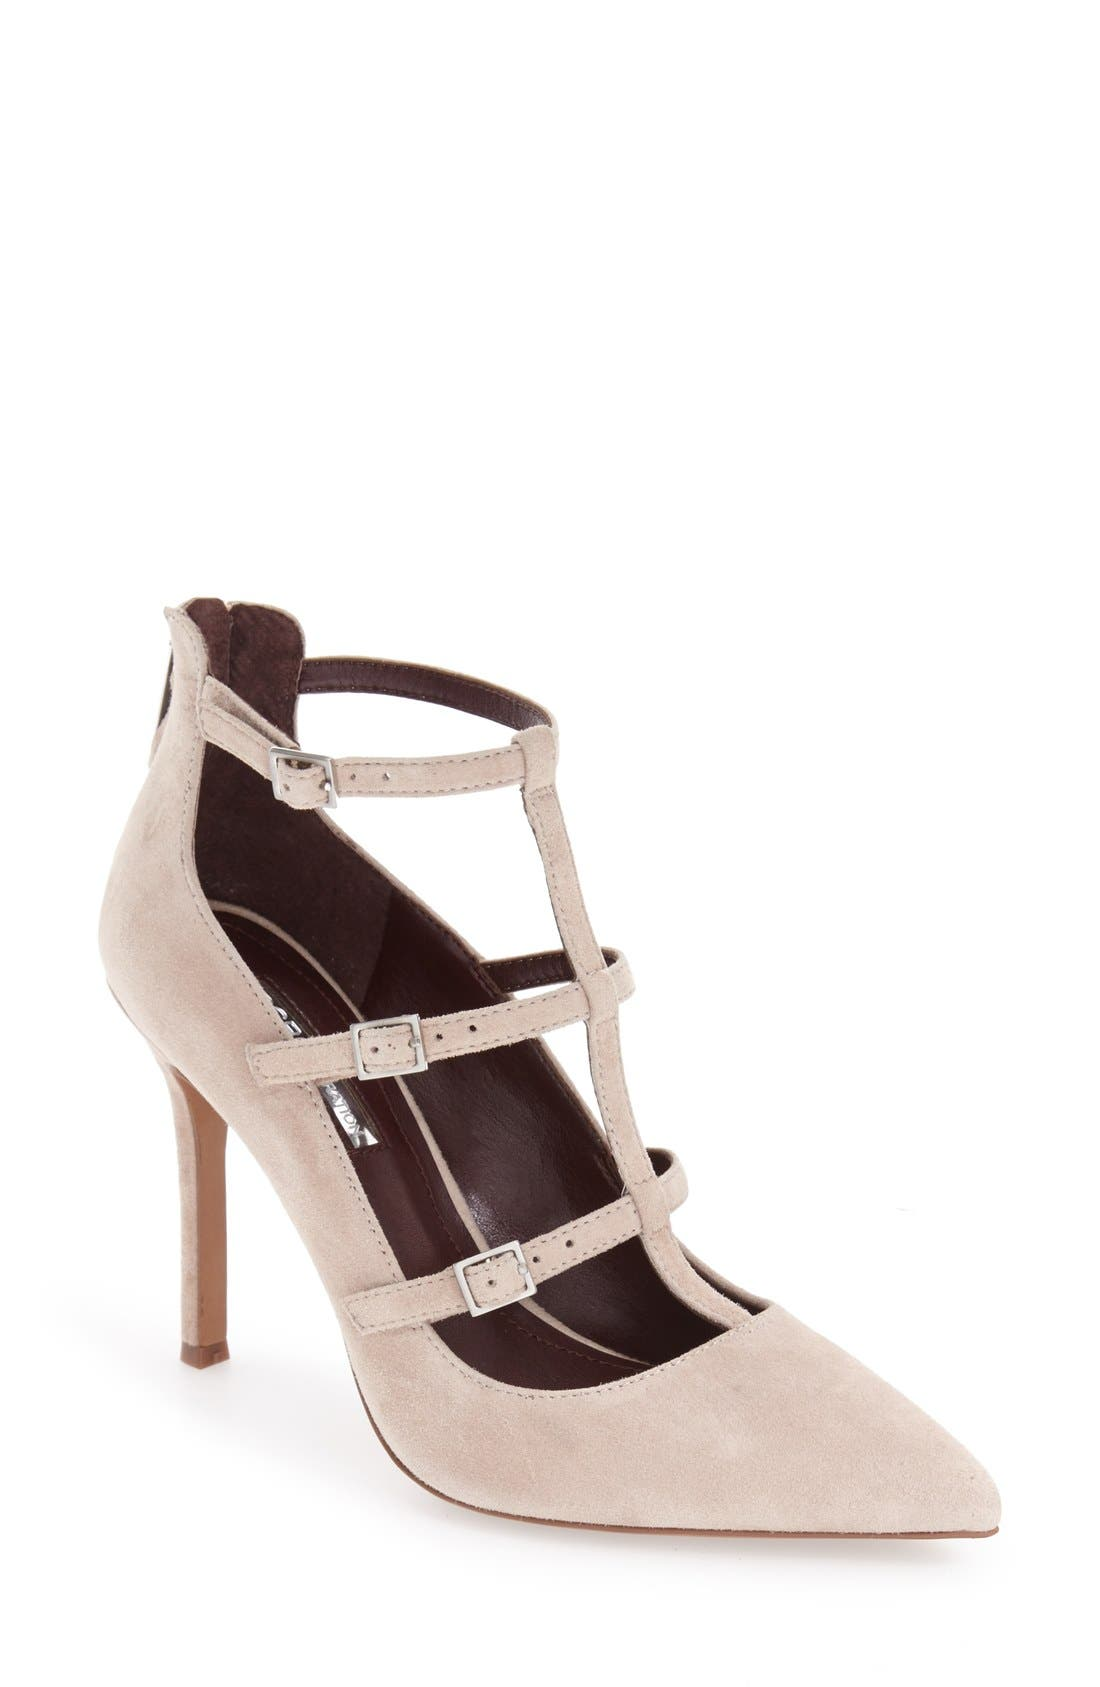 Main Image - BCBGeneration 'Tamerra' Cage Pump (Women)